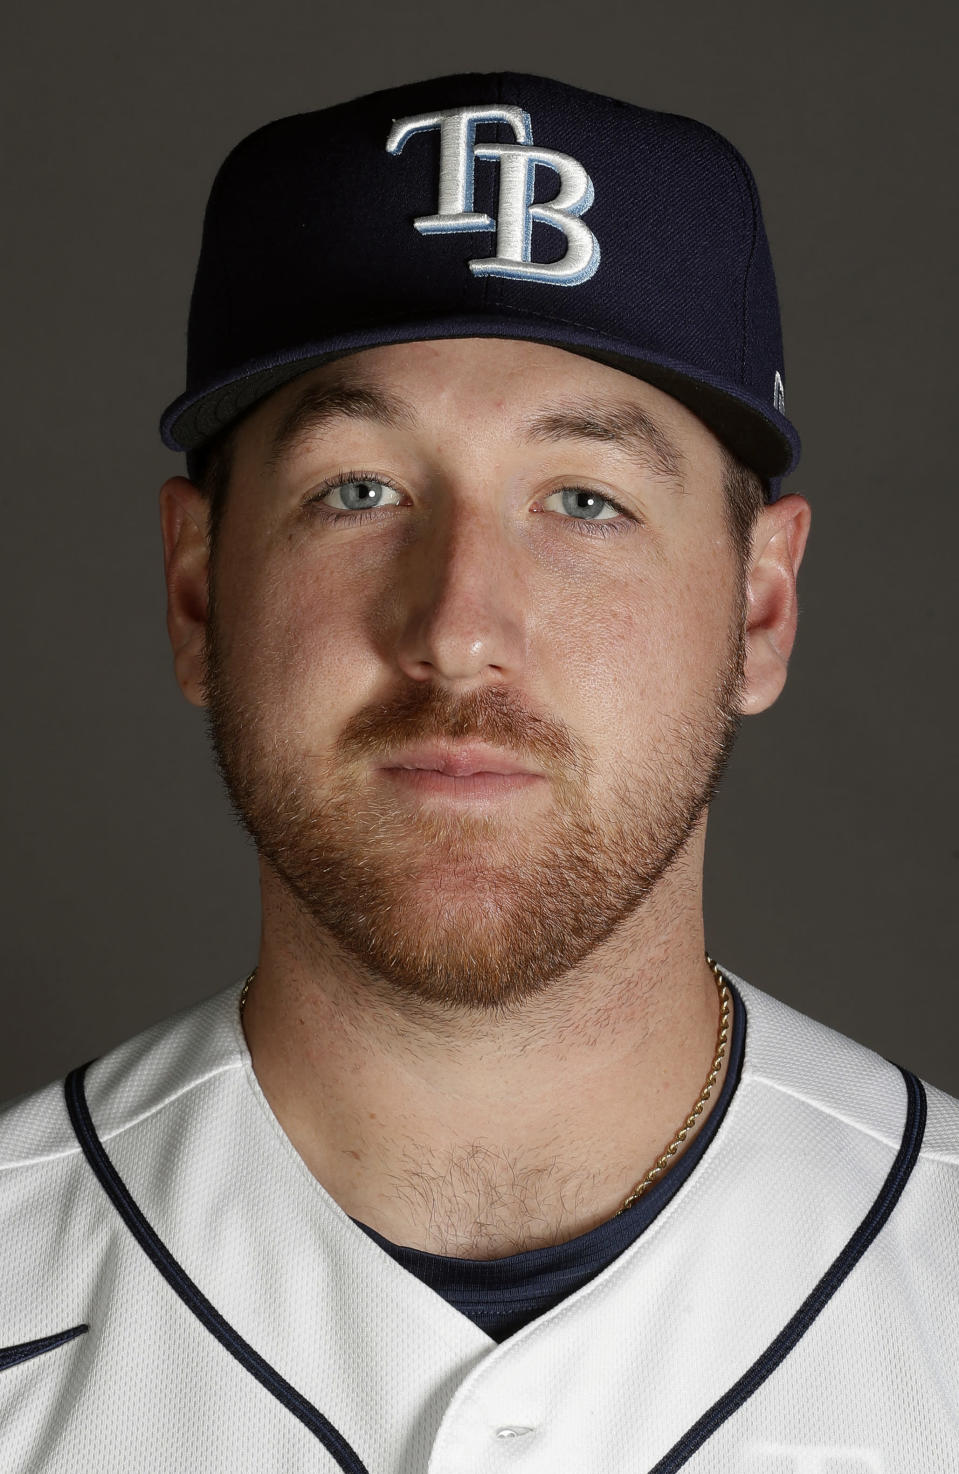 FILE- This is a 2020, file photo, of Tyler Zombro of the Tampa Rays baseball team. Zombro was kept overnight at a hospital and remains in stable condition after being struck in the head by a line drive Thursday night, June 3, 2021, a frightening scene that prompted Triple-A Durham to suspend its game. (AP Photo/John Bazemore, File)